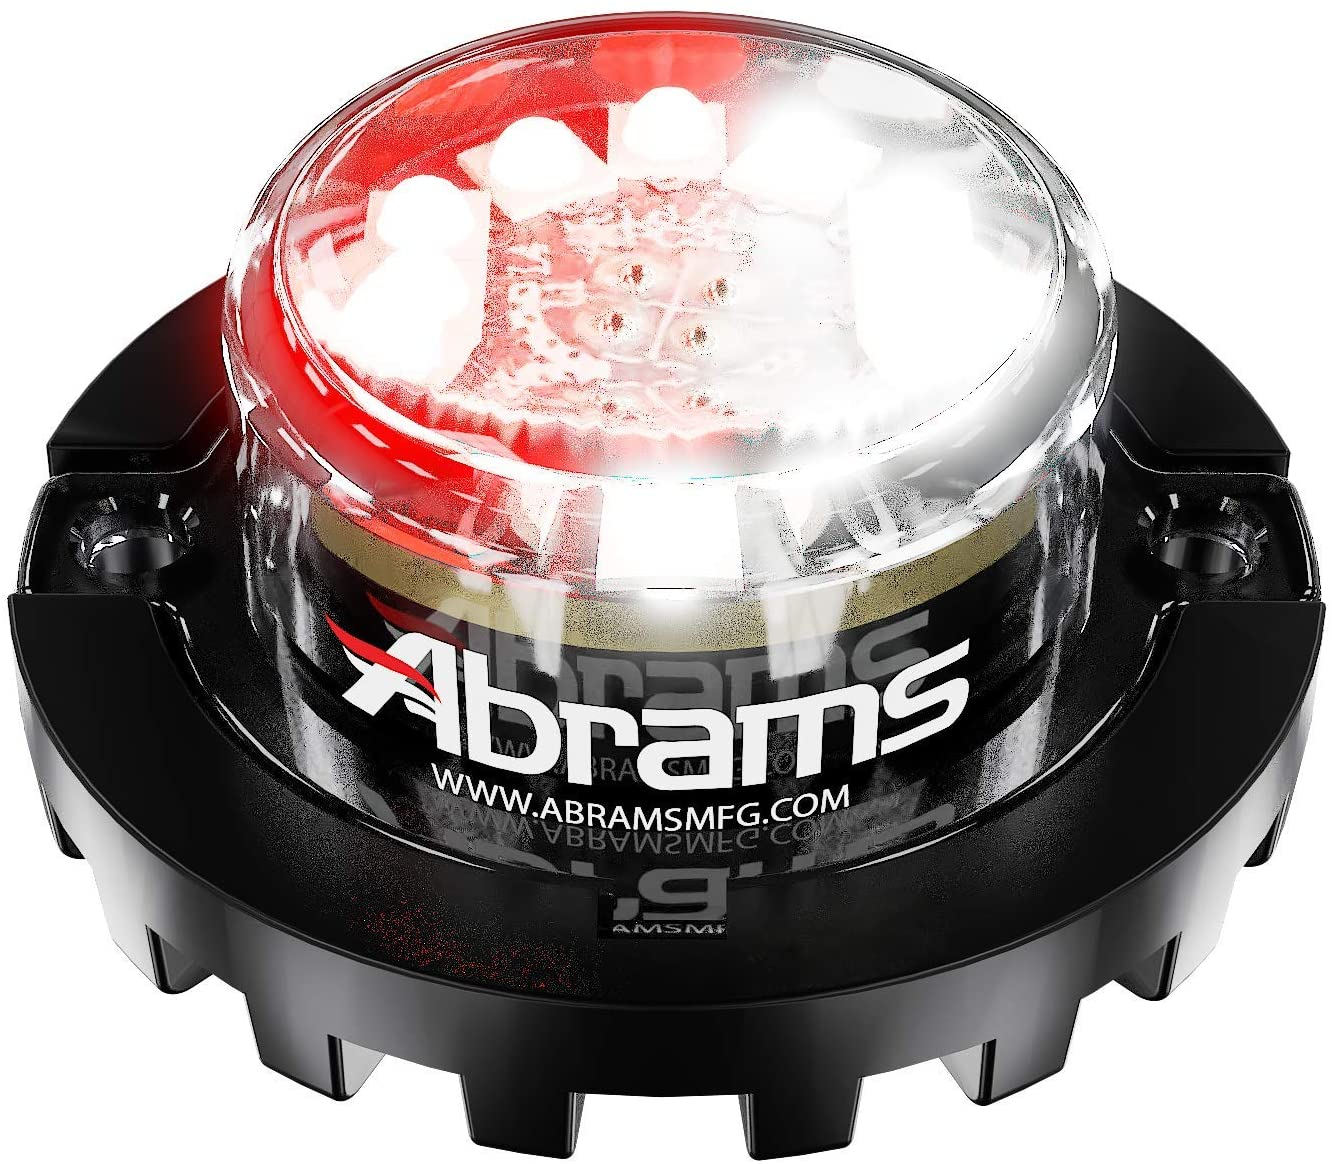 Abrams SAE Class-1 Blaster 120 (Red/White) 36W - 12 LED EMS EMT Fire Truck Vehicle LED Hideaway Surface Mount Strobe Warning Light